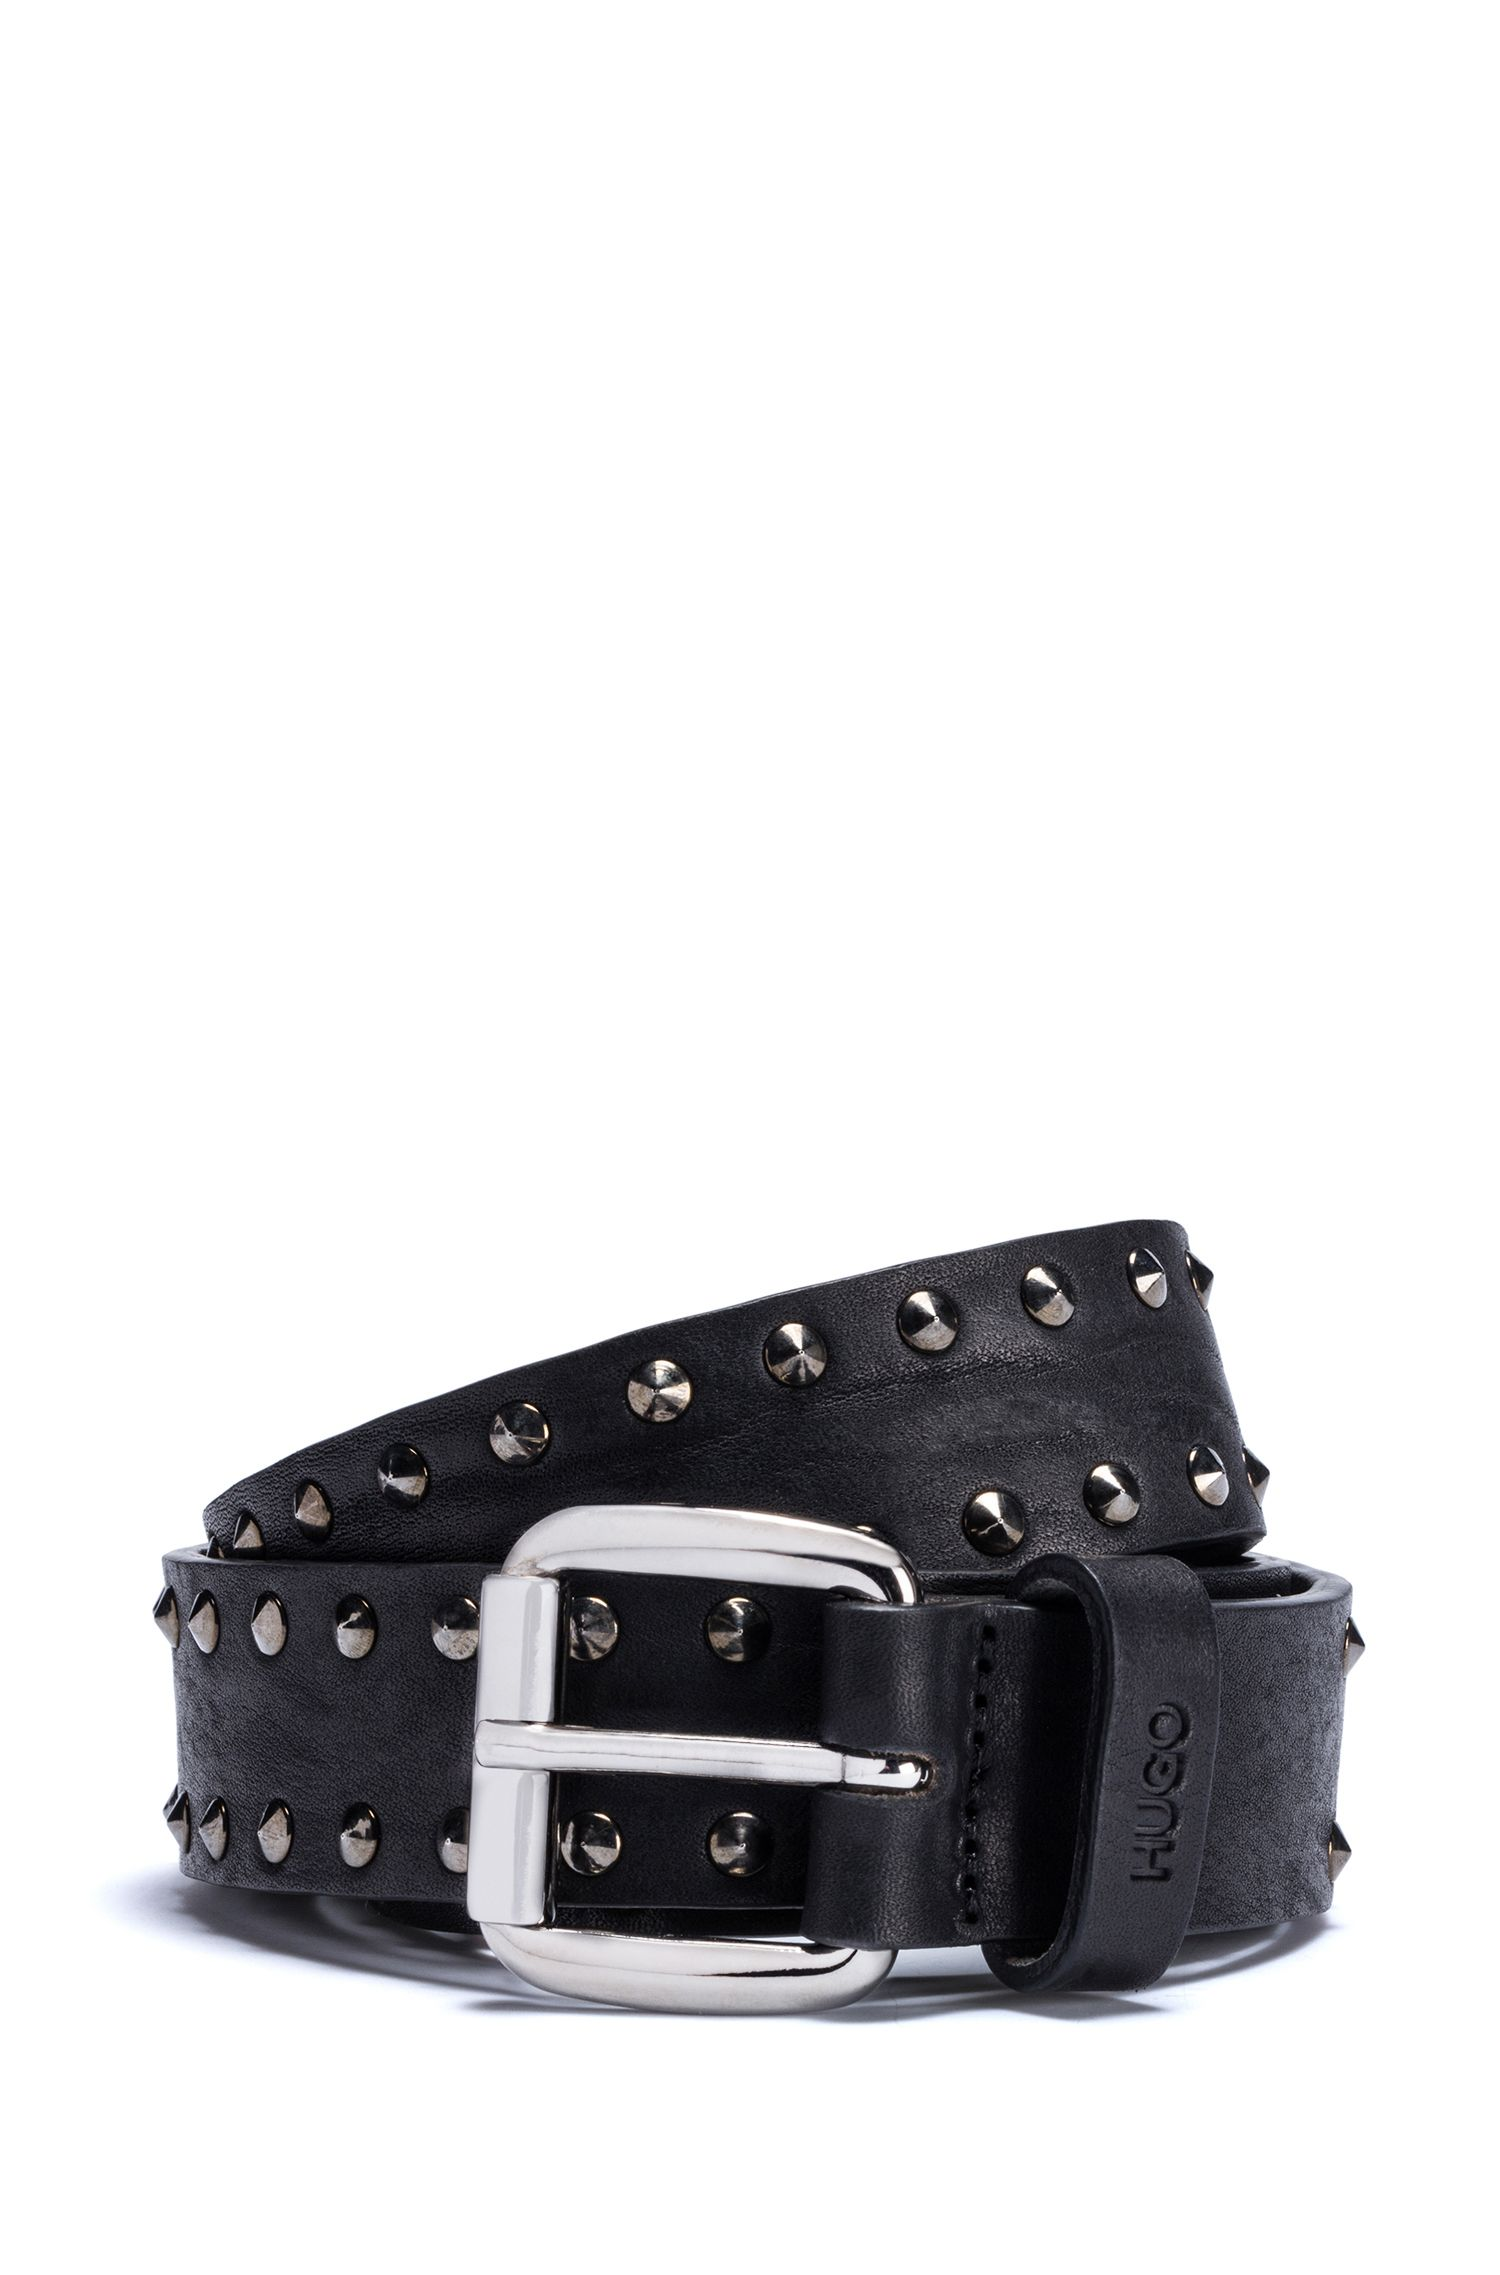 Tumbled-leather belt with stud detailing